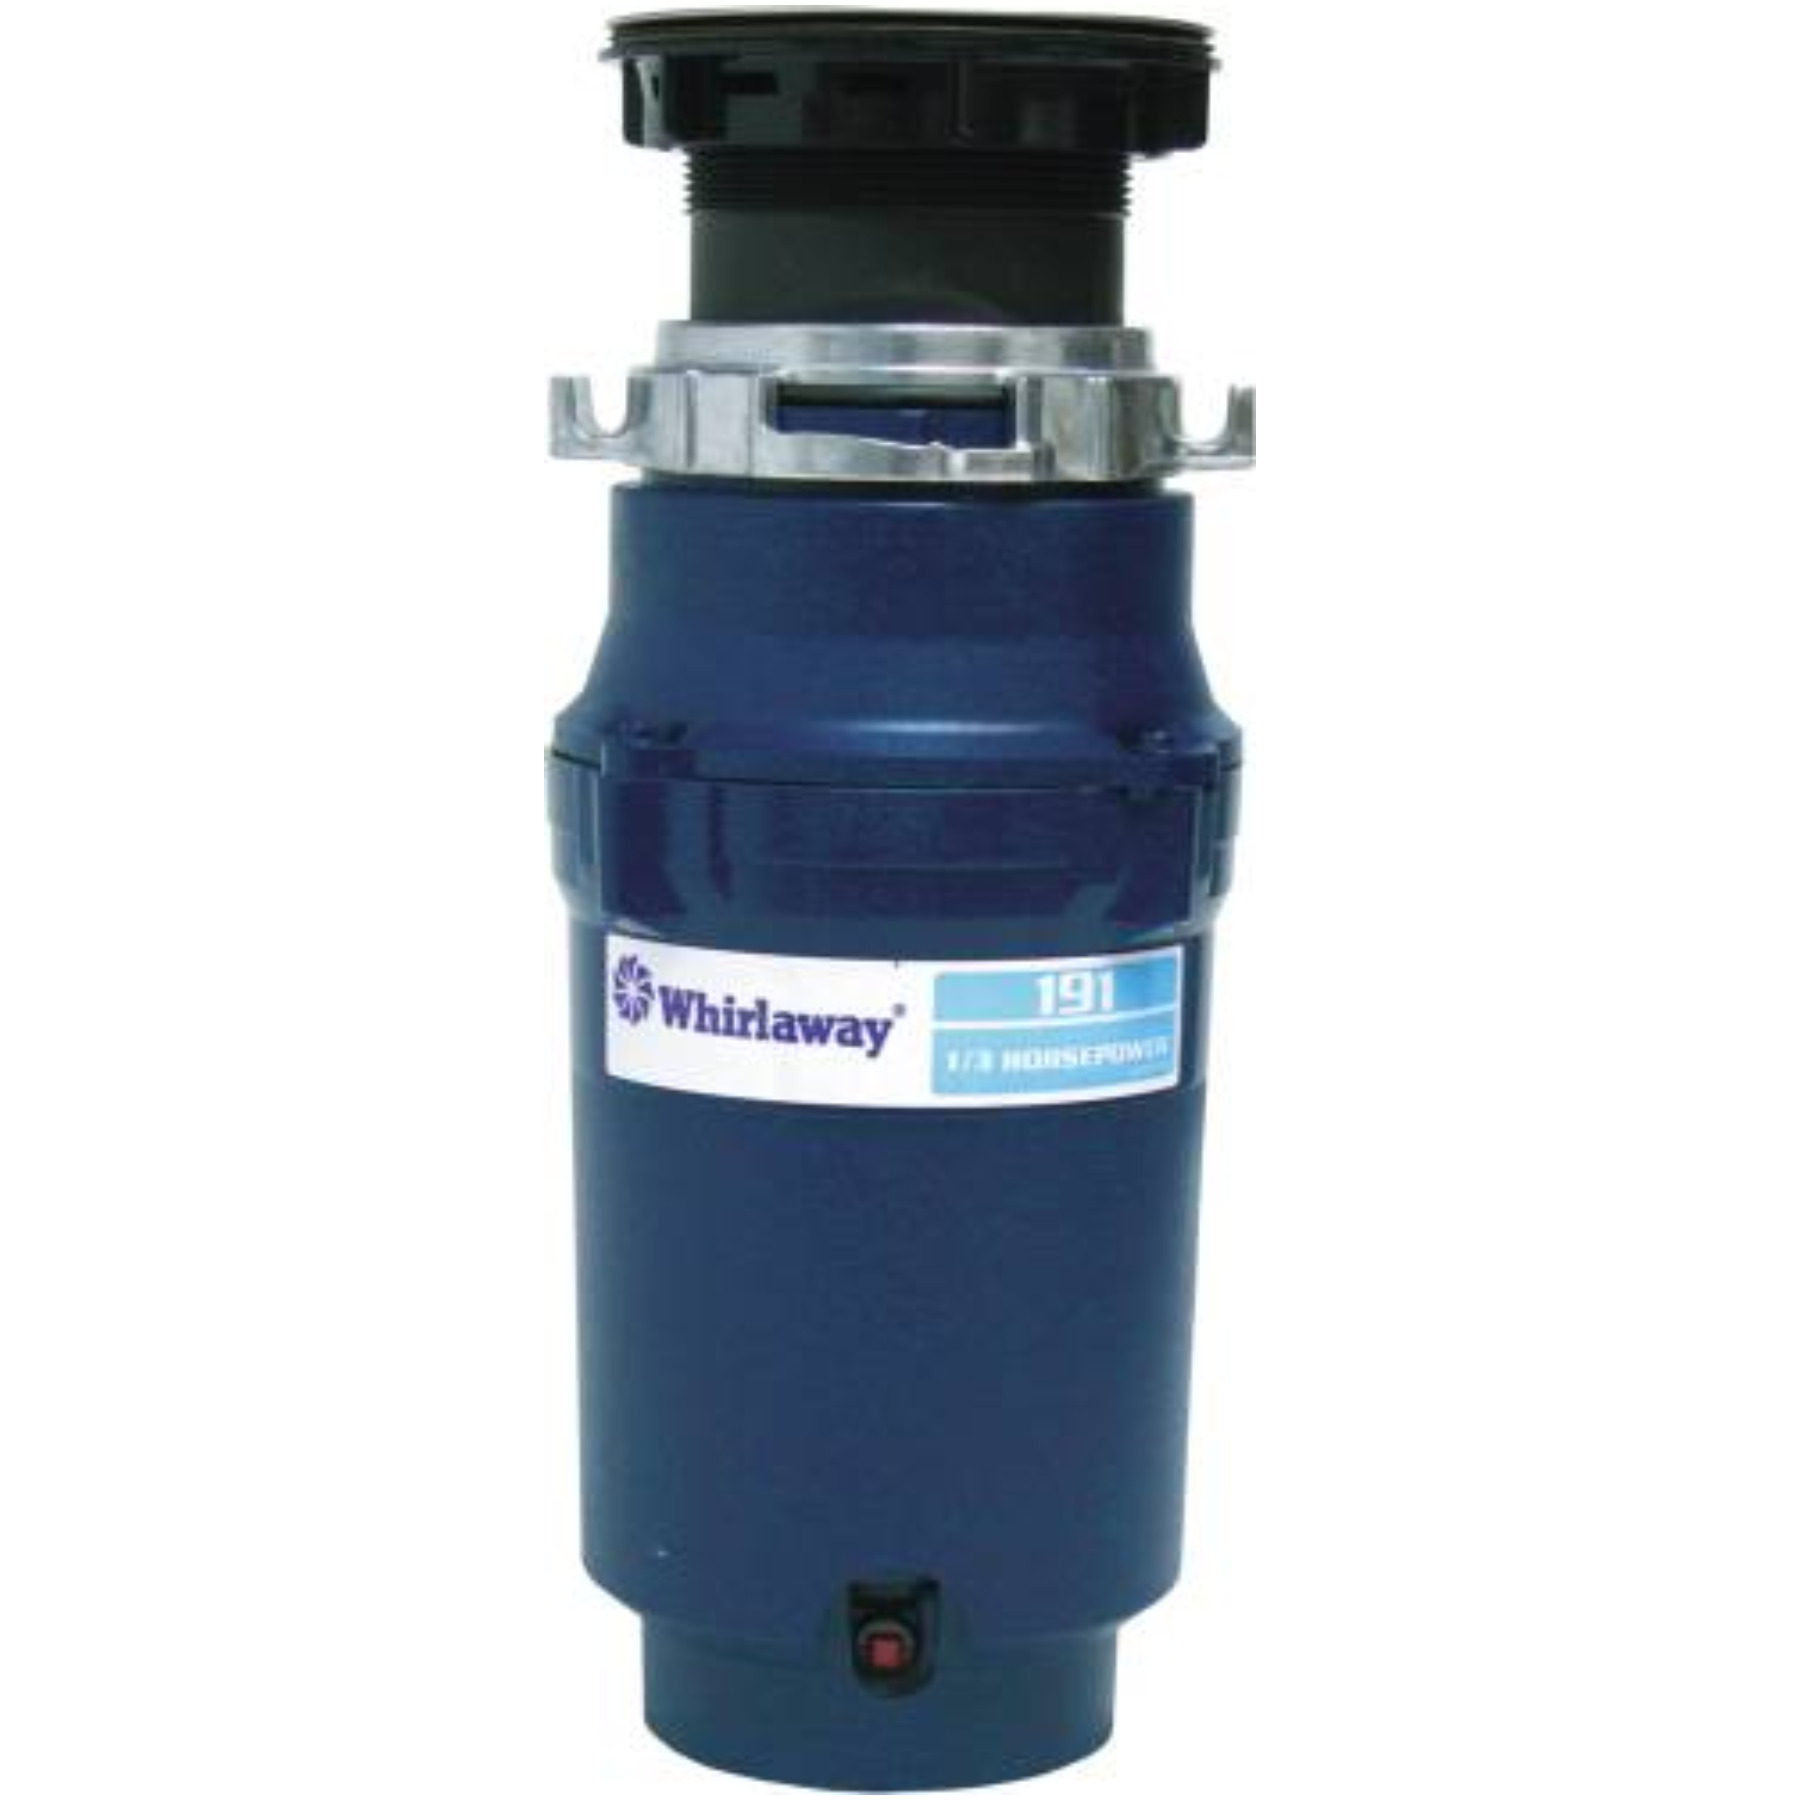 WHIRLAWAY GARBAGE DISPOSAL WITH PLUG 1/3 HP